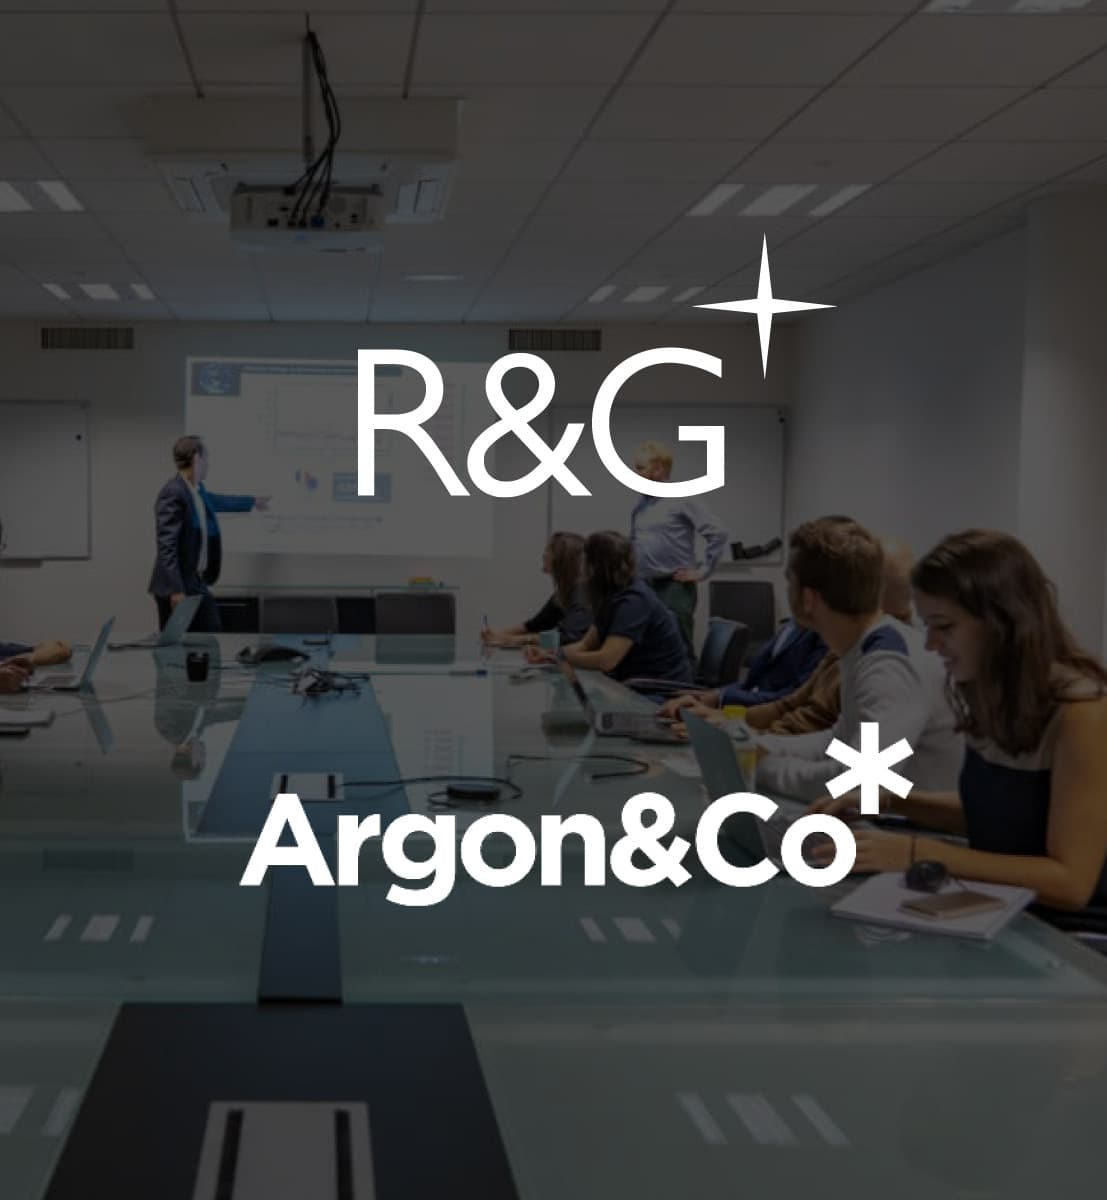 DEX international M&A advised R&G Global Consultants on the sale to Argon & Co